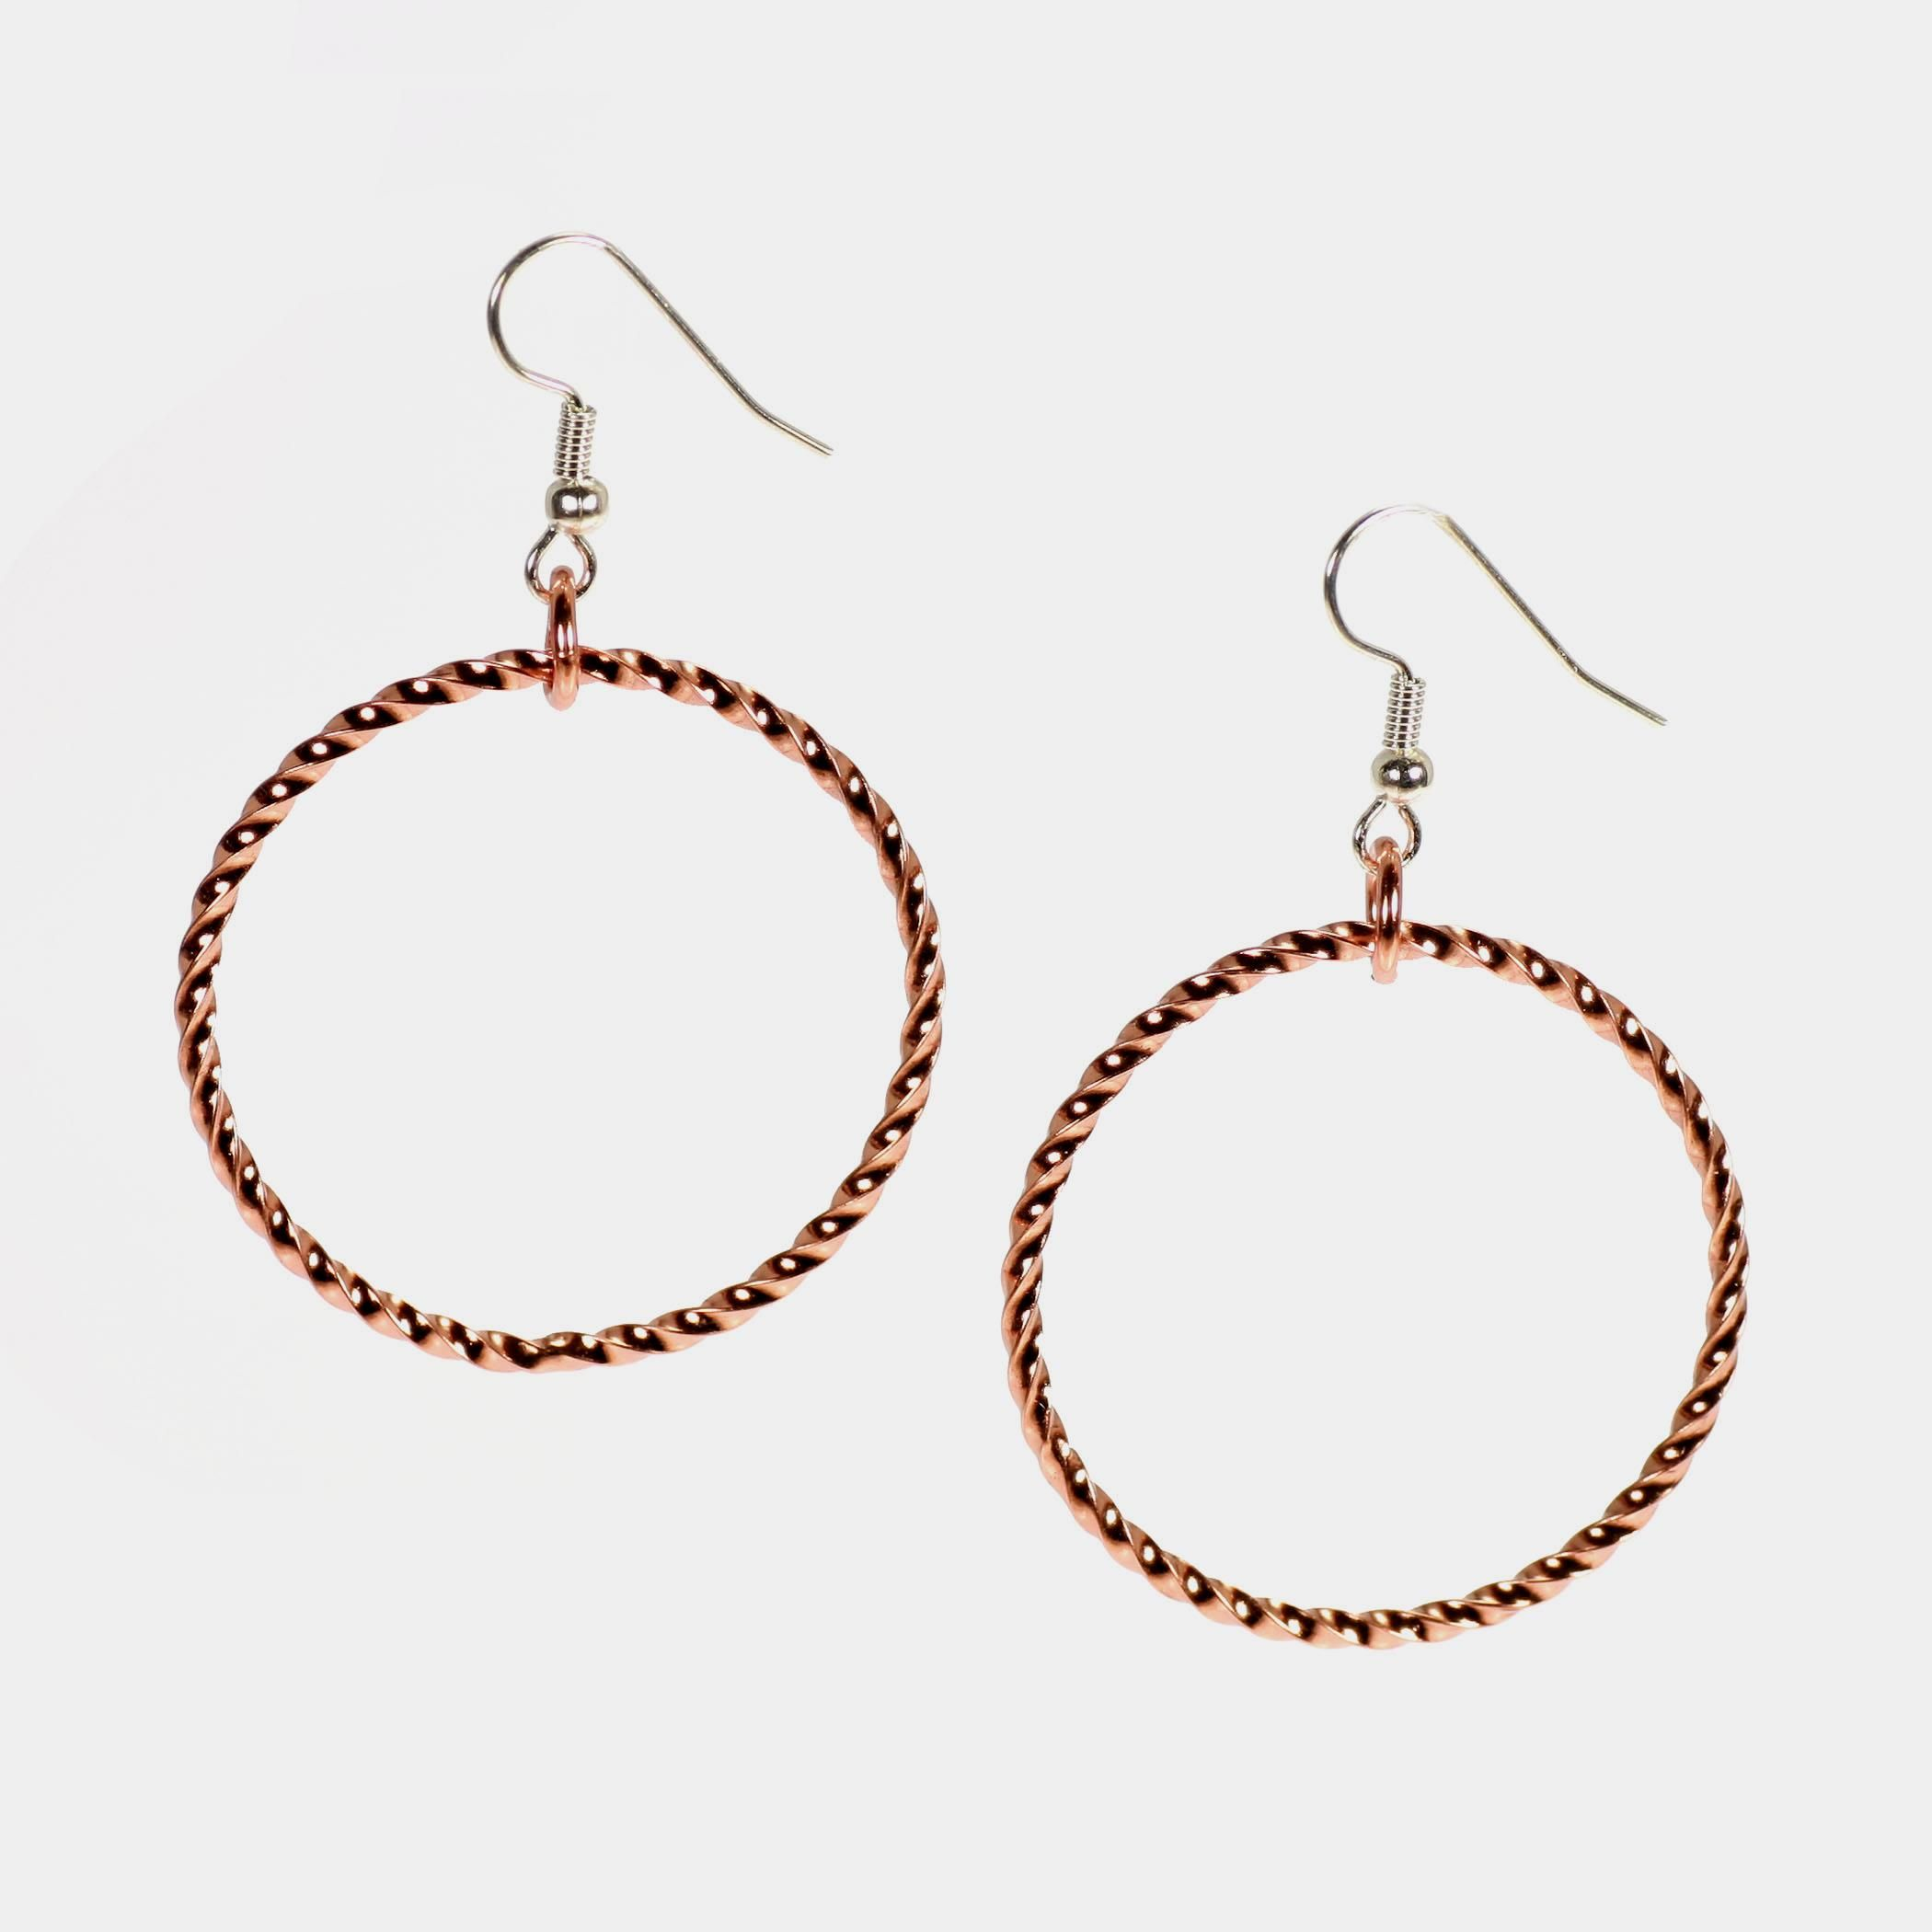 New Spectacular Copper Cable Hoop Earrings Featured by #HandmadeAtAmazon #7thAnniversary http://www.amazon.com/dp/B00TU9XR3Y